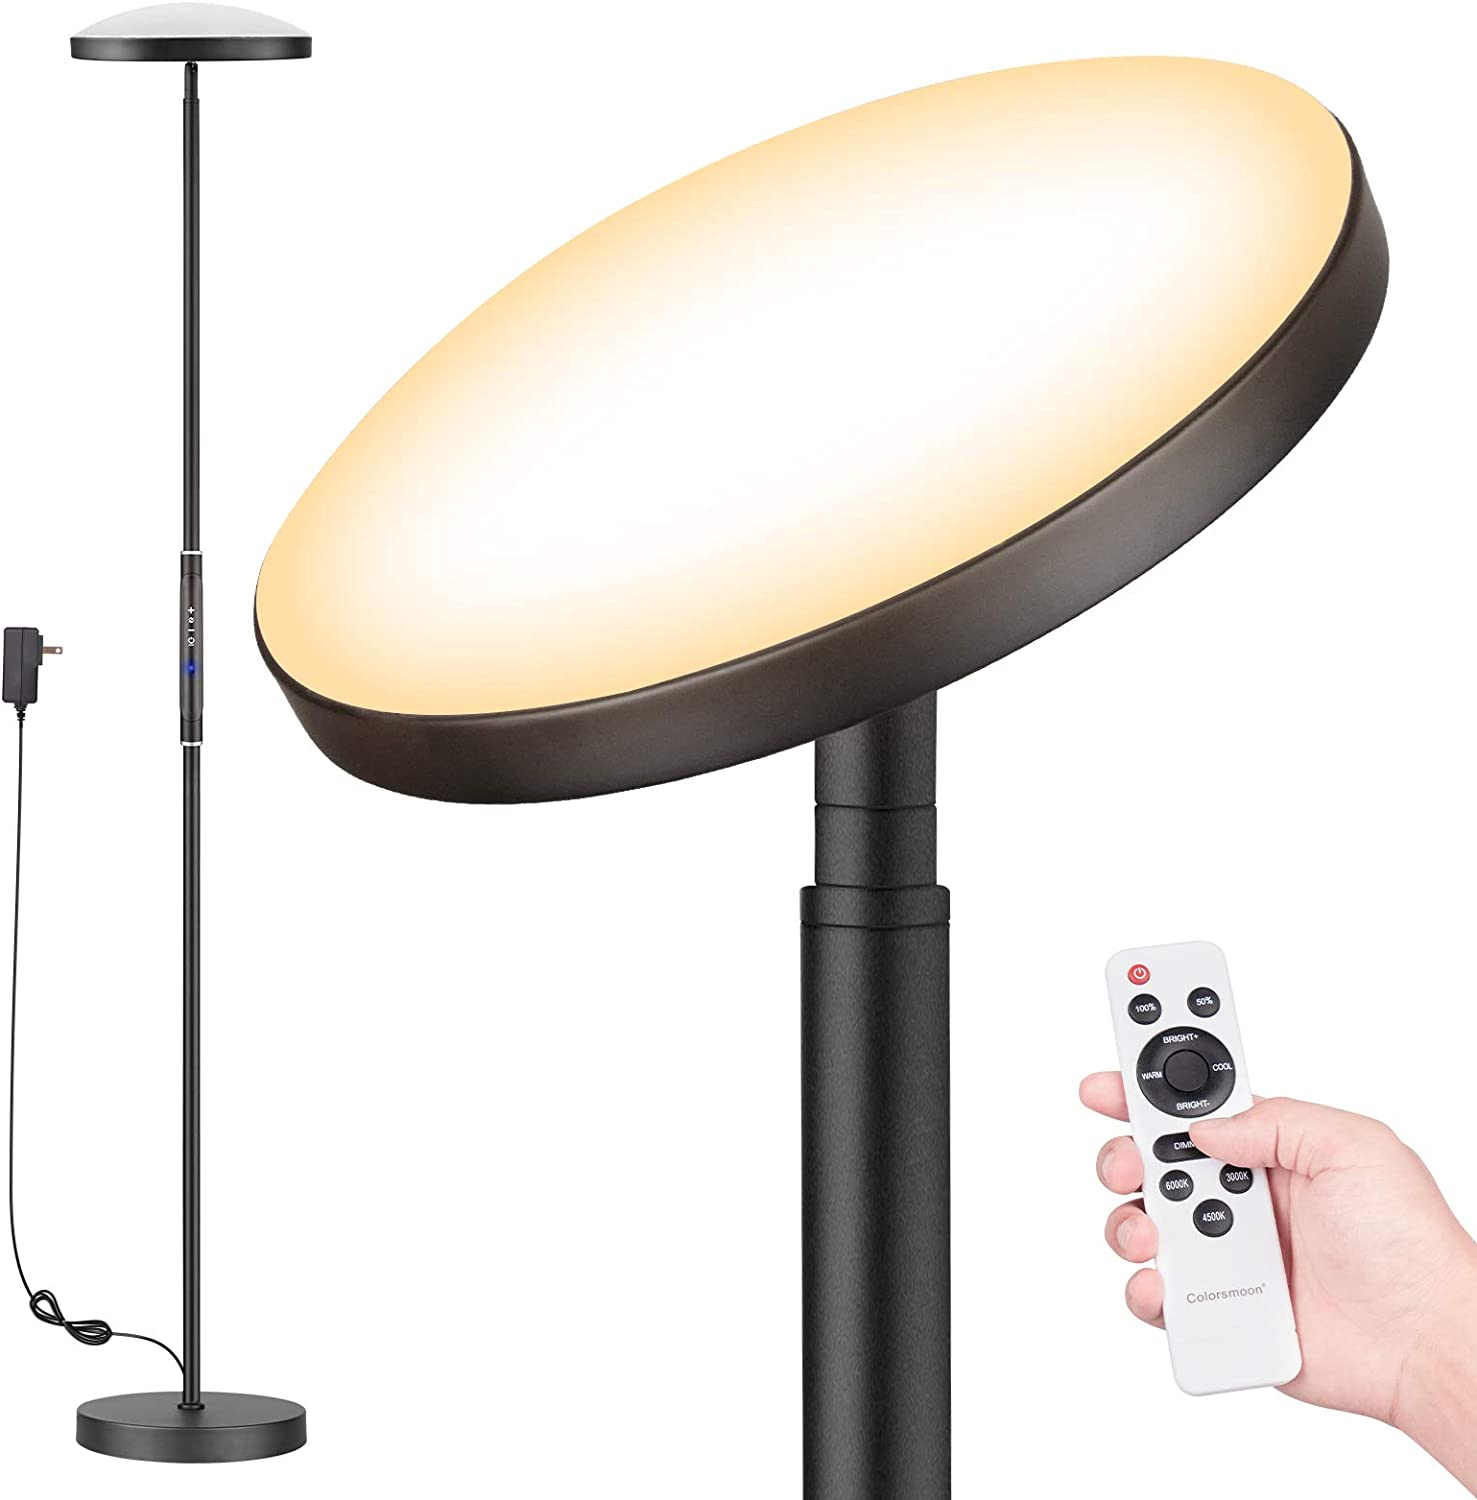 Floor Lamp, Colorsmoon 2200LM Super Bright Sky LED Torchiere, 5 Color Temperature Dimmable Tall Standing Light with Remote Control for Living Room, Bedroom, Office (Black)